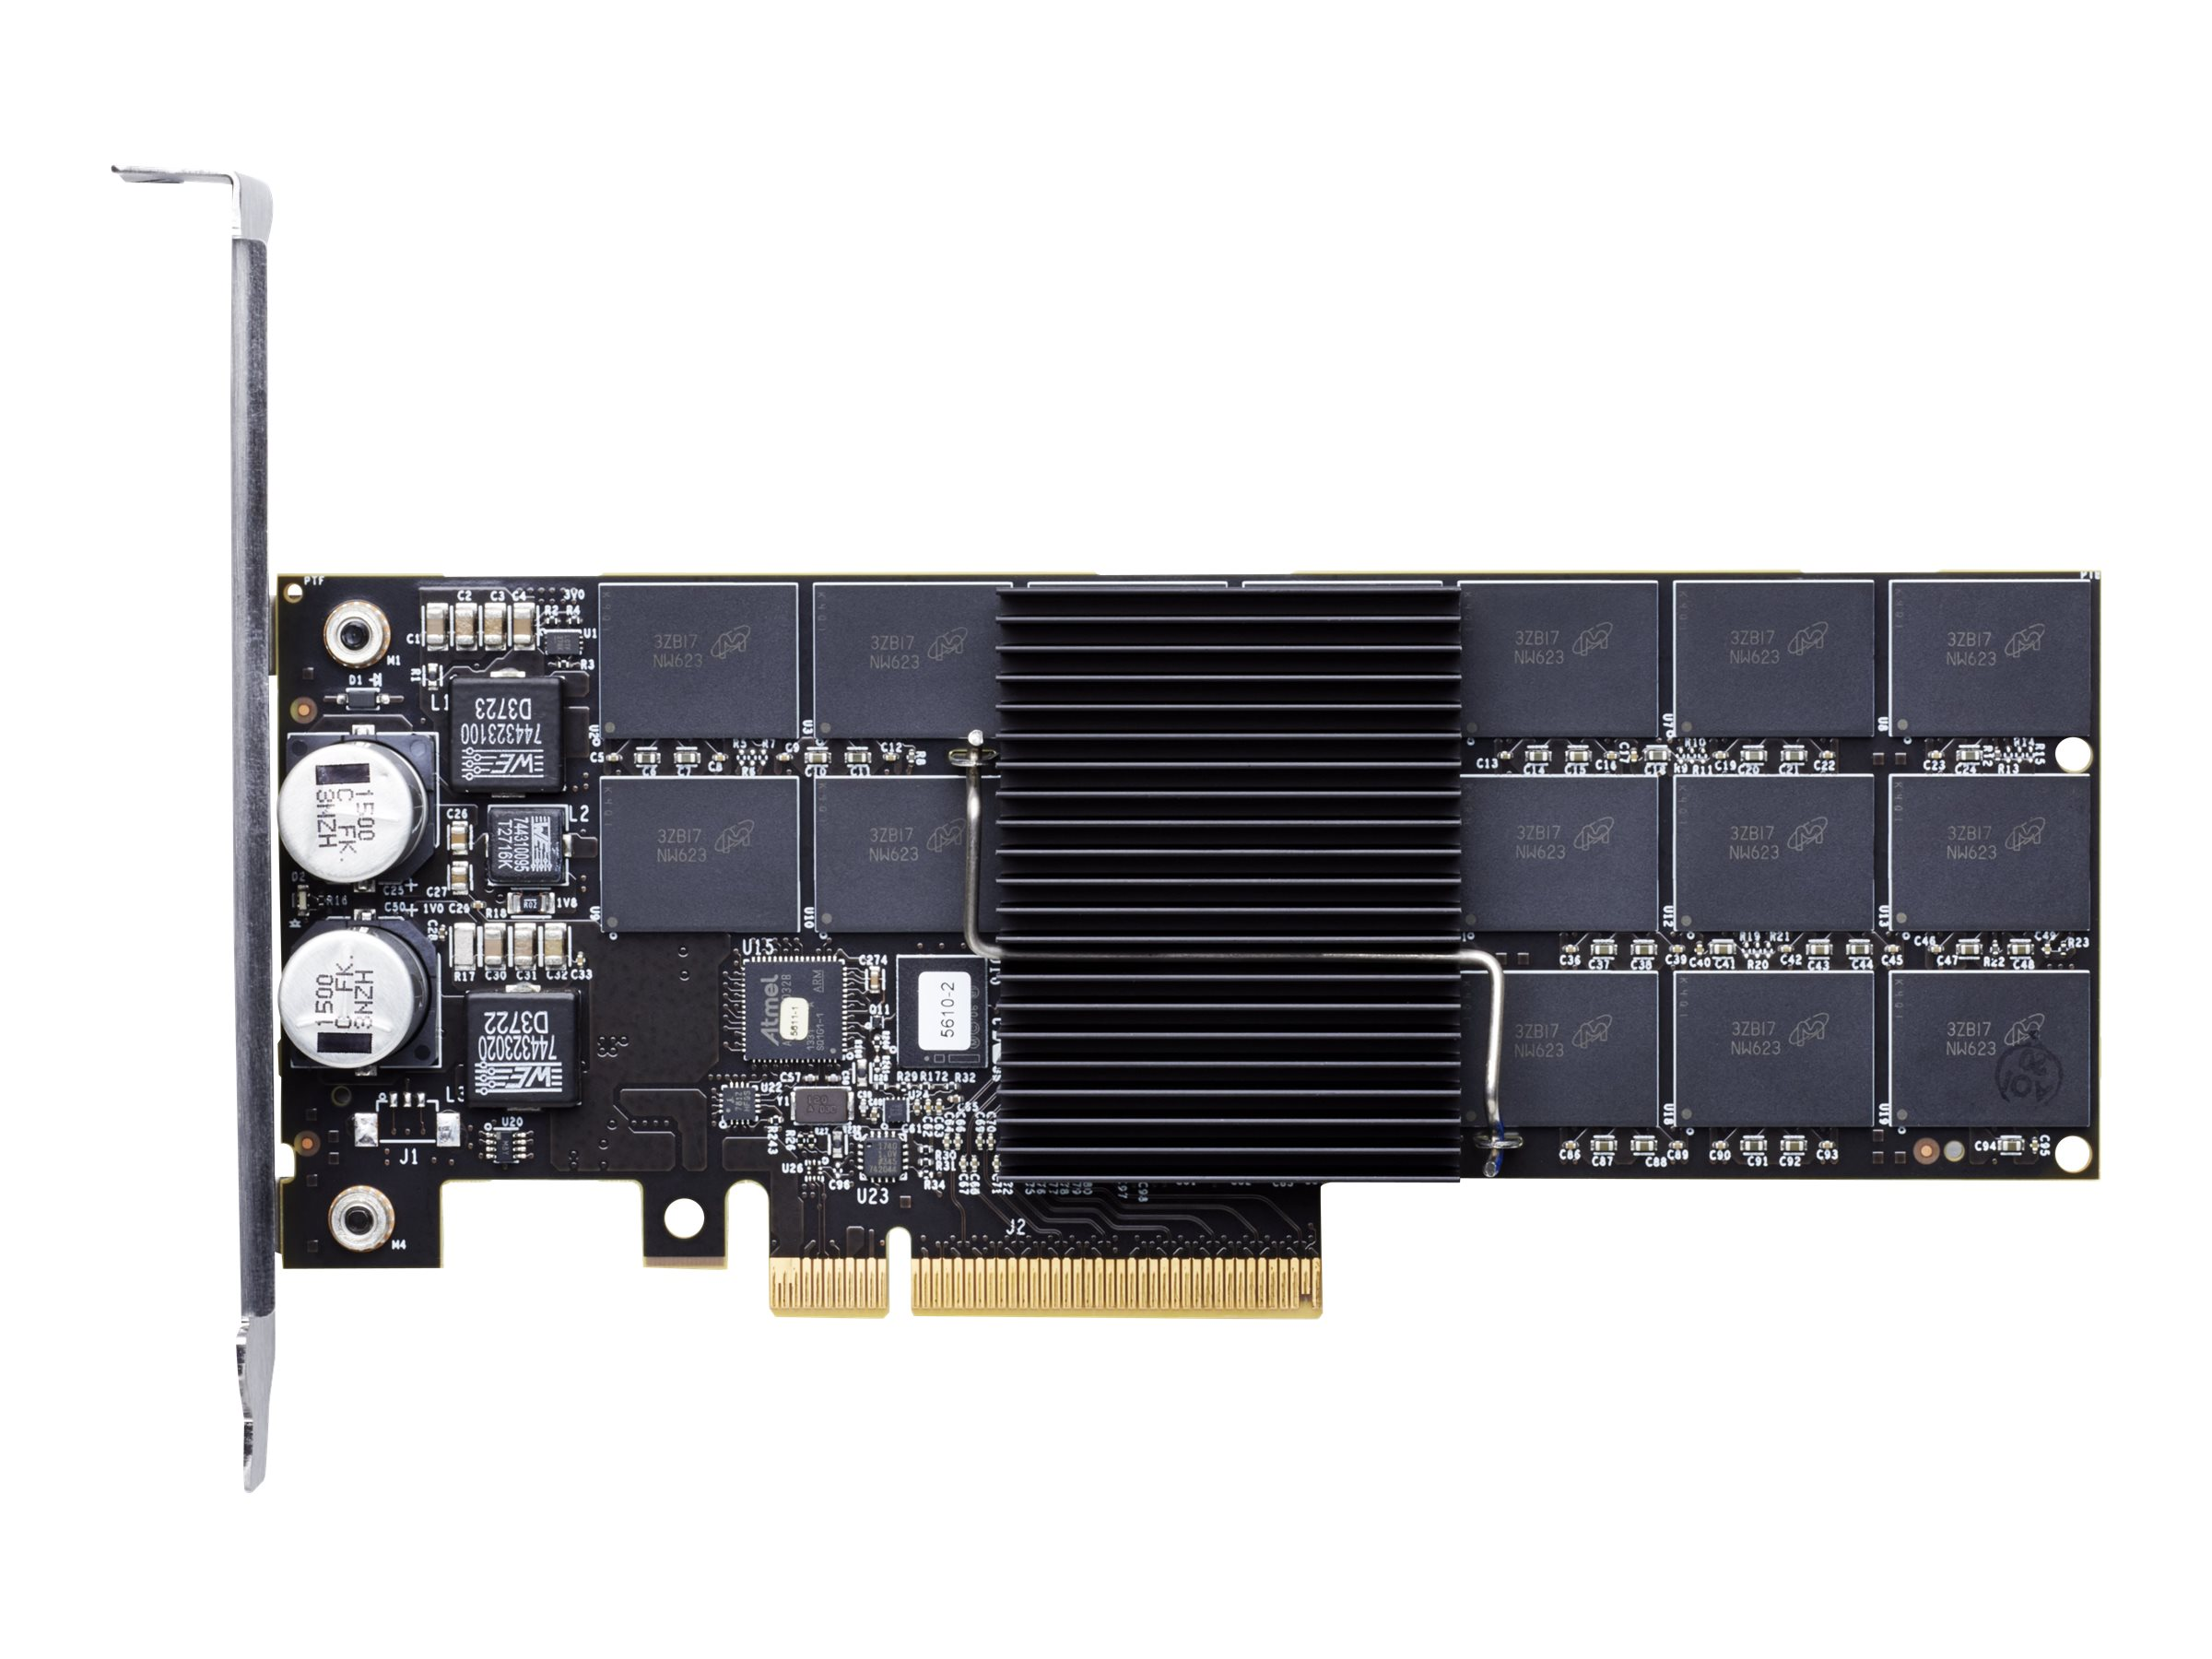 HPE Write Intensive Workload Accelerator - solid state drive - 1.6 TB - PCI Express 3.0 x4 (NVMe) -